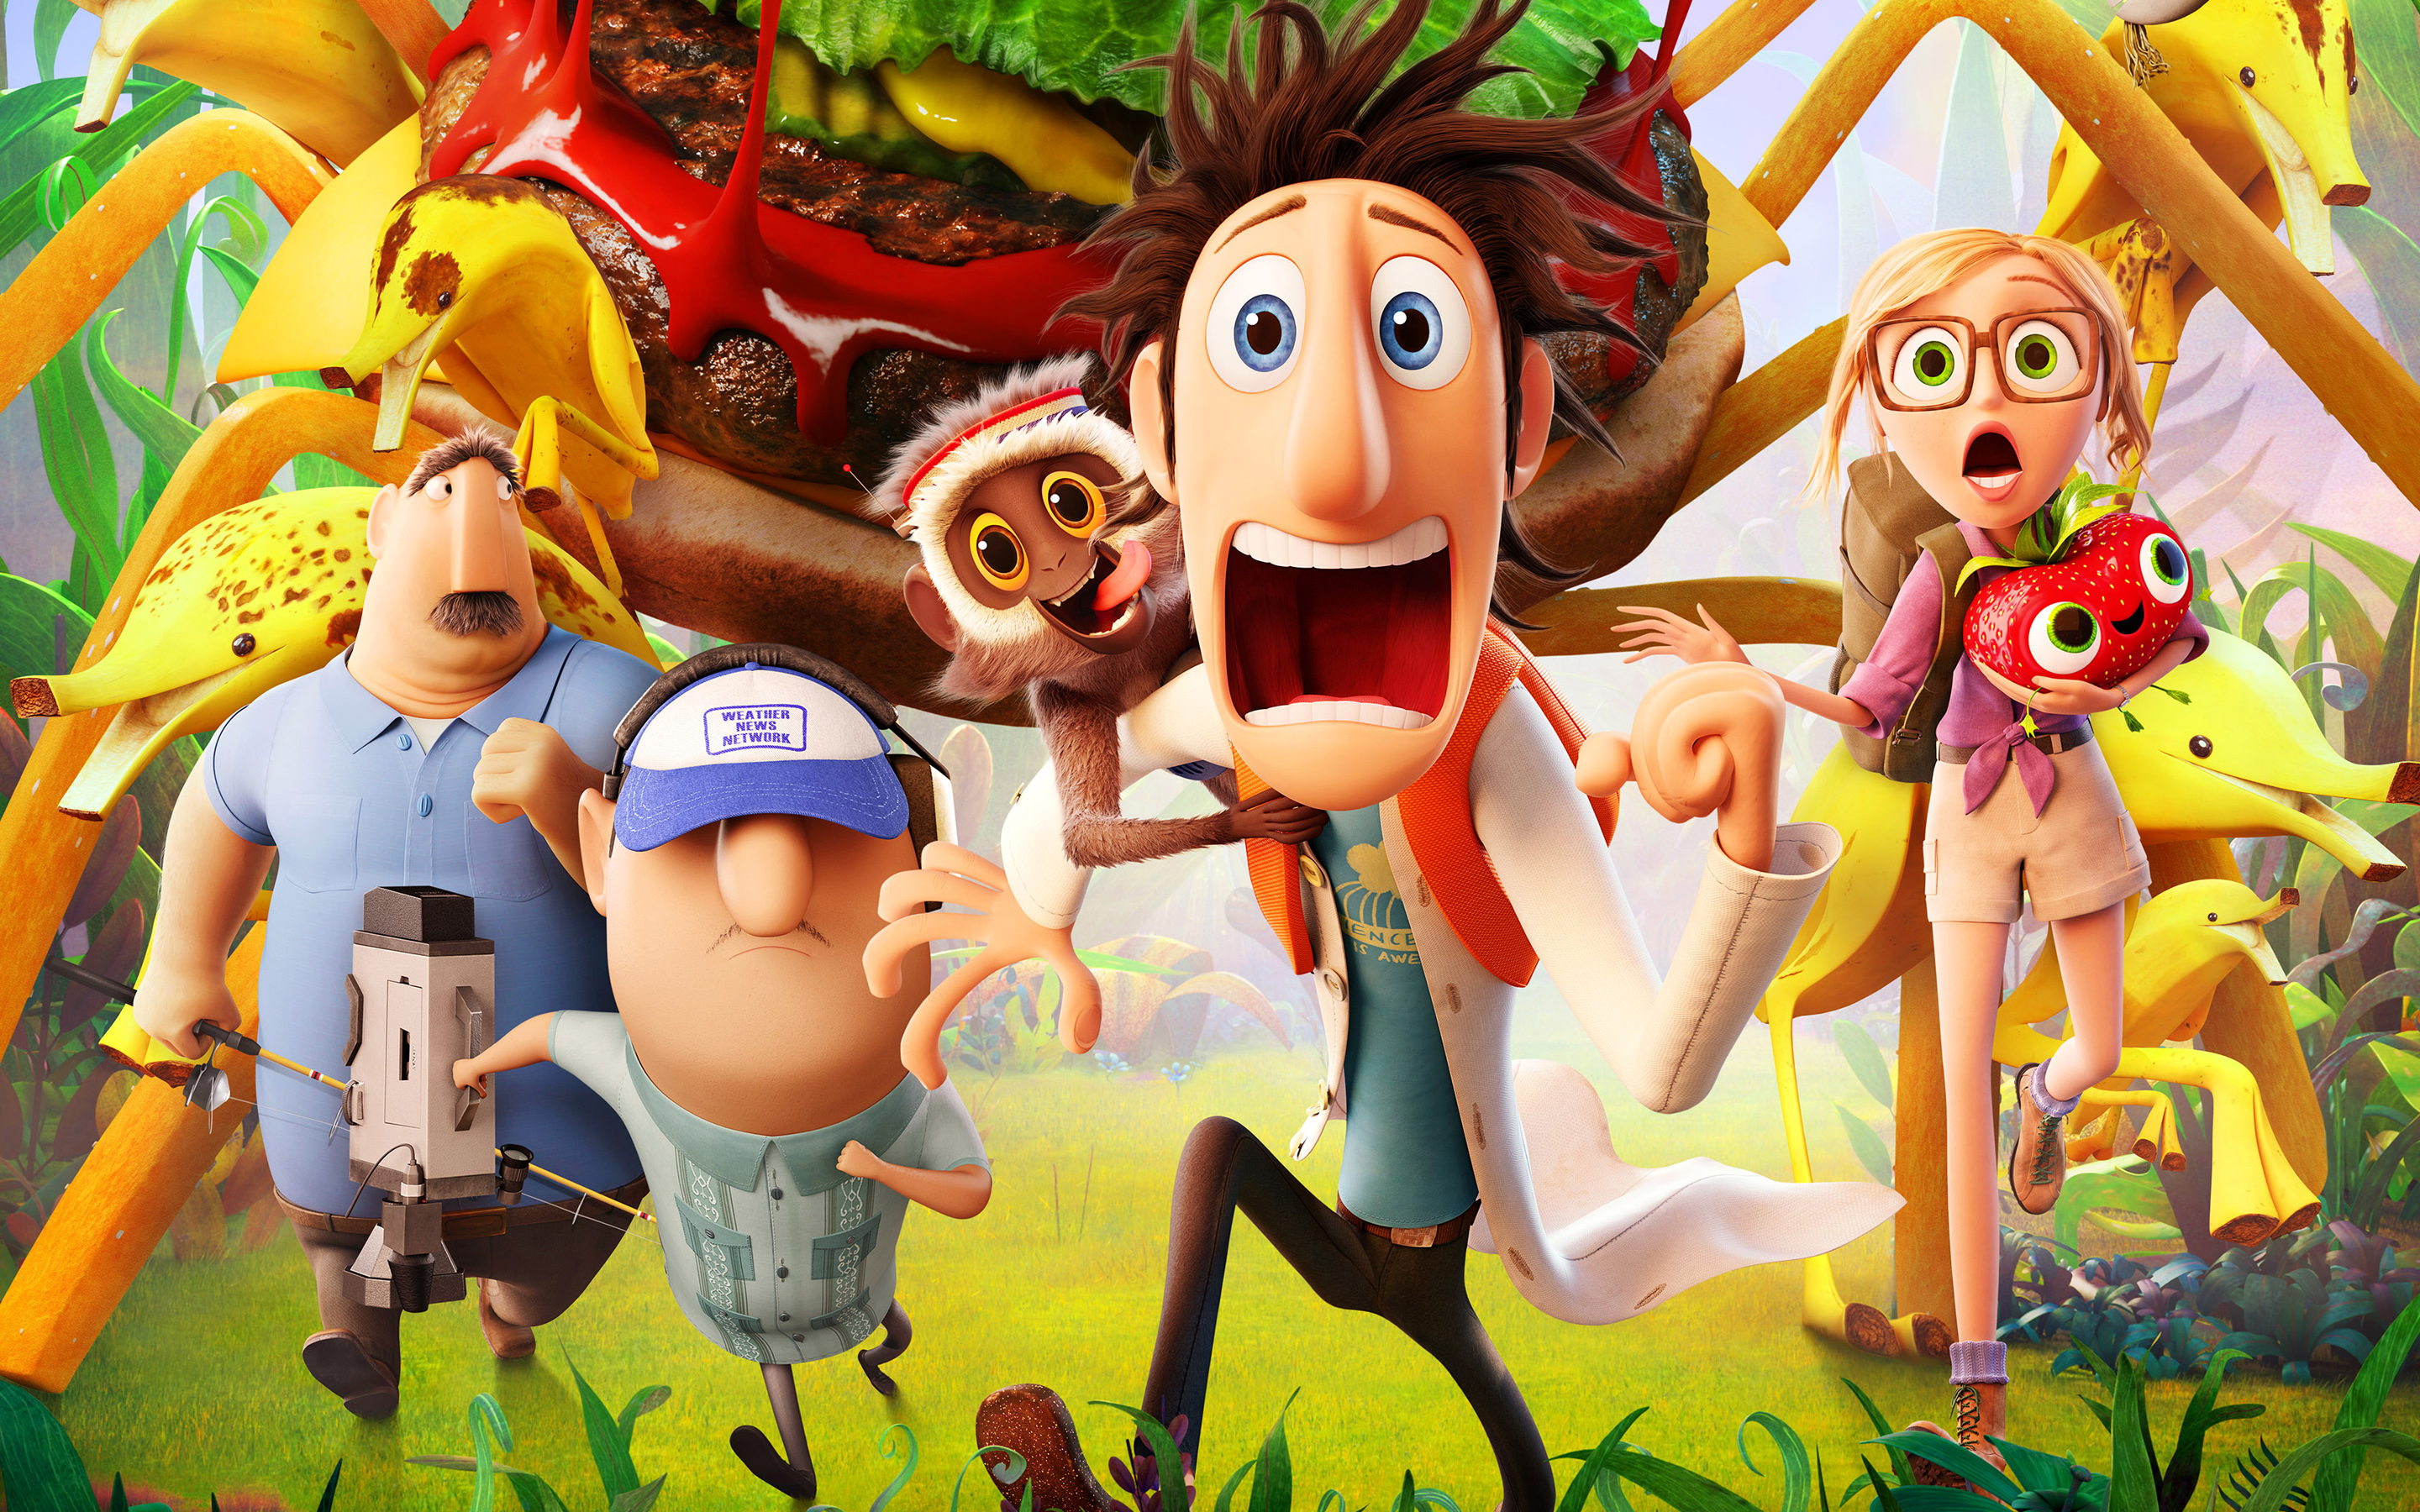 Free movie night cloudy with a chance of meatballs 2 all things.